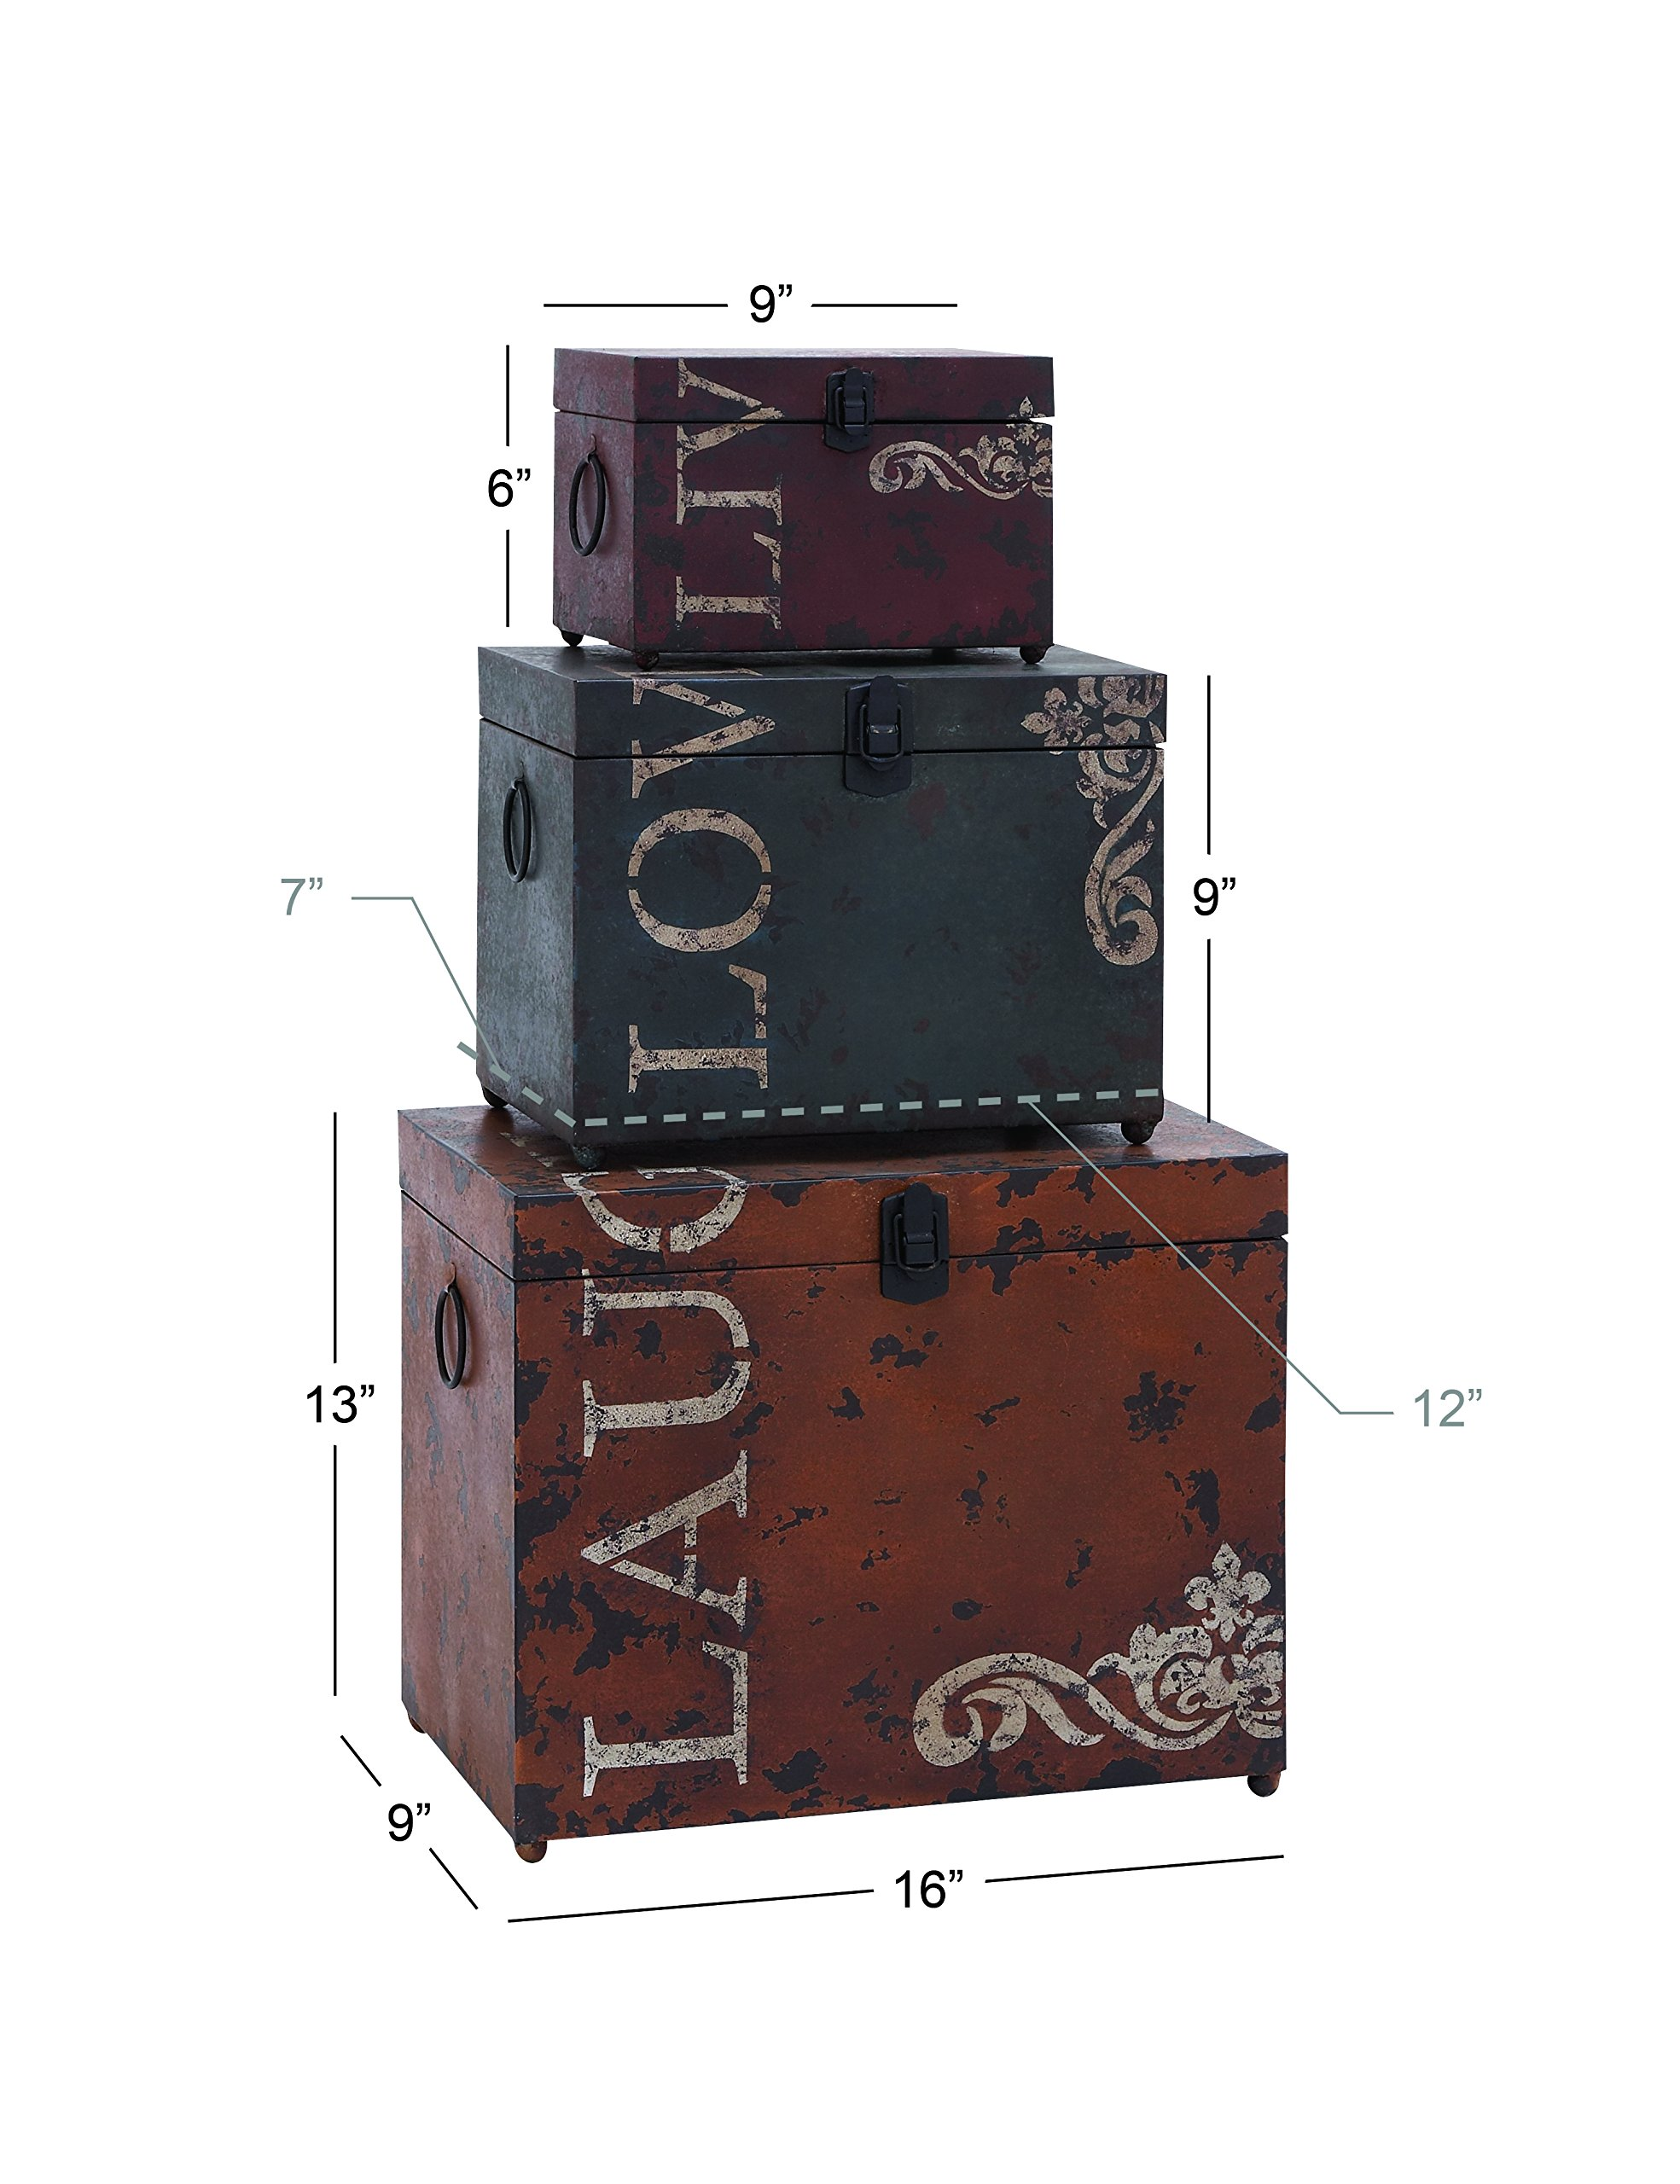 Deco 79 53854 Metal Trunks (Set of 3), 16''/12''/9'' by Deco 79 (Image #2)